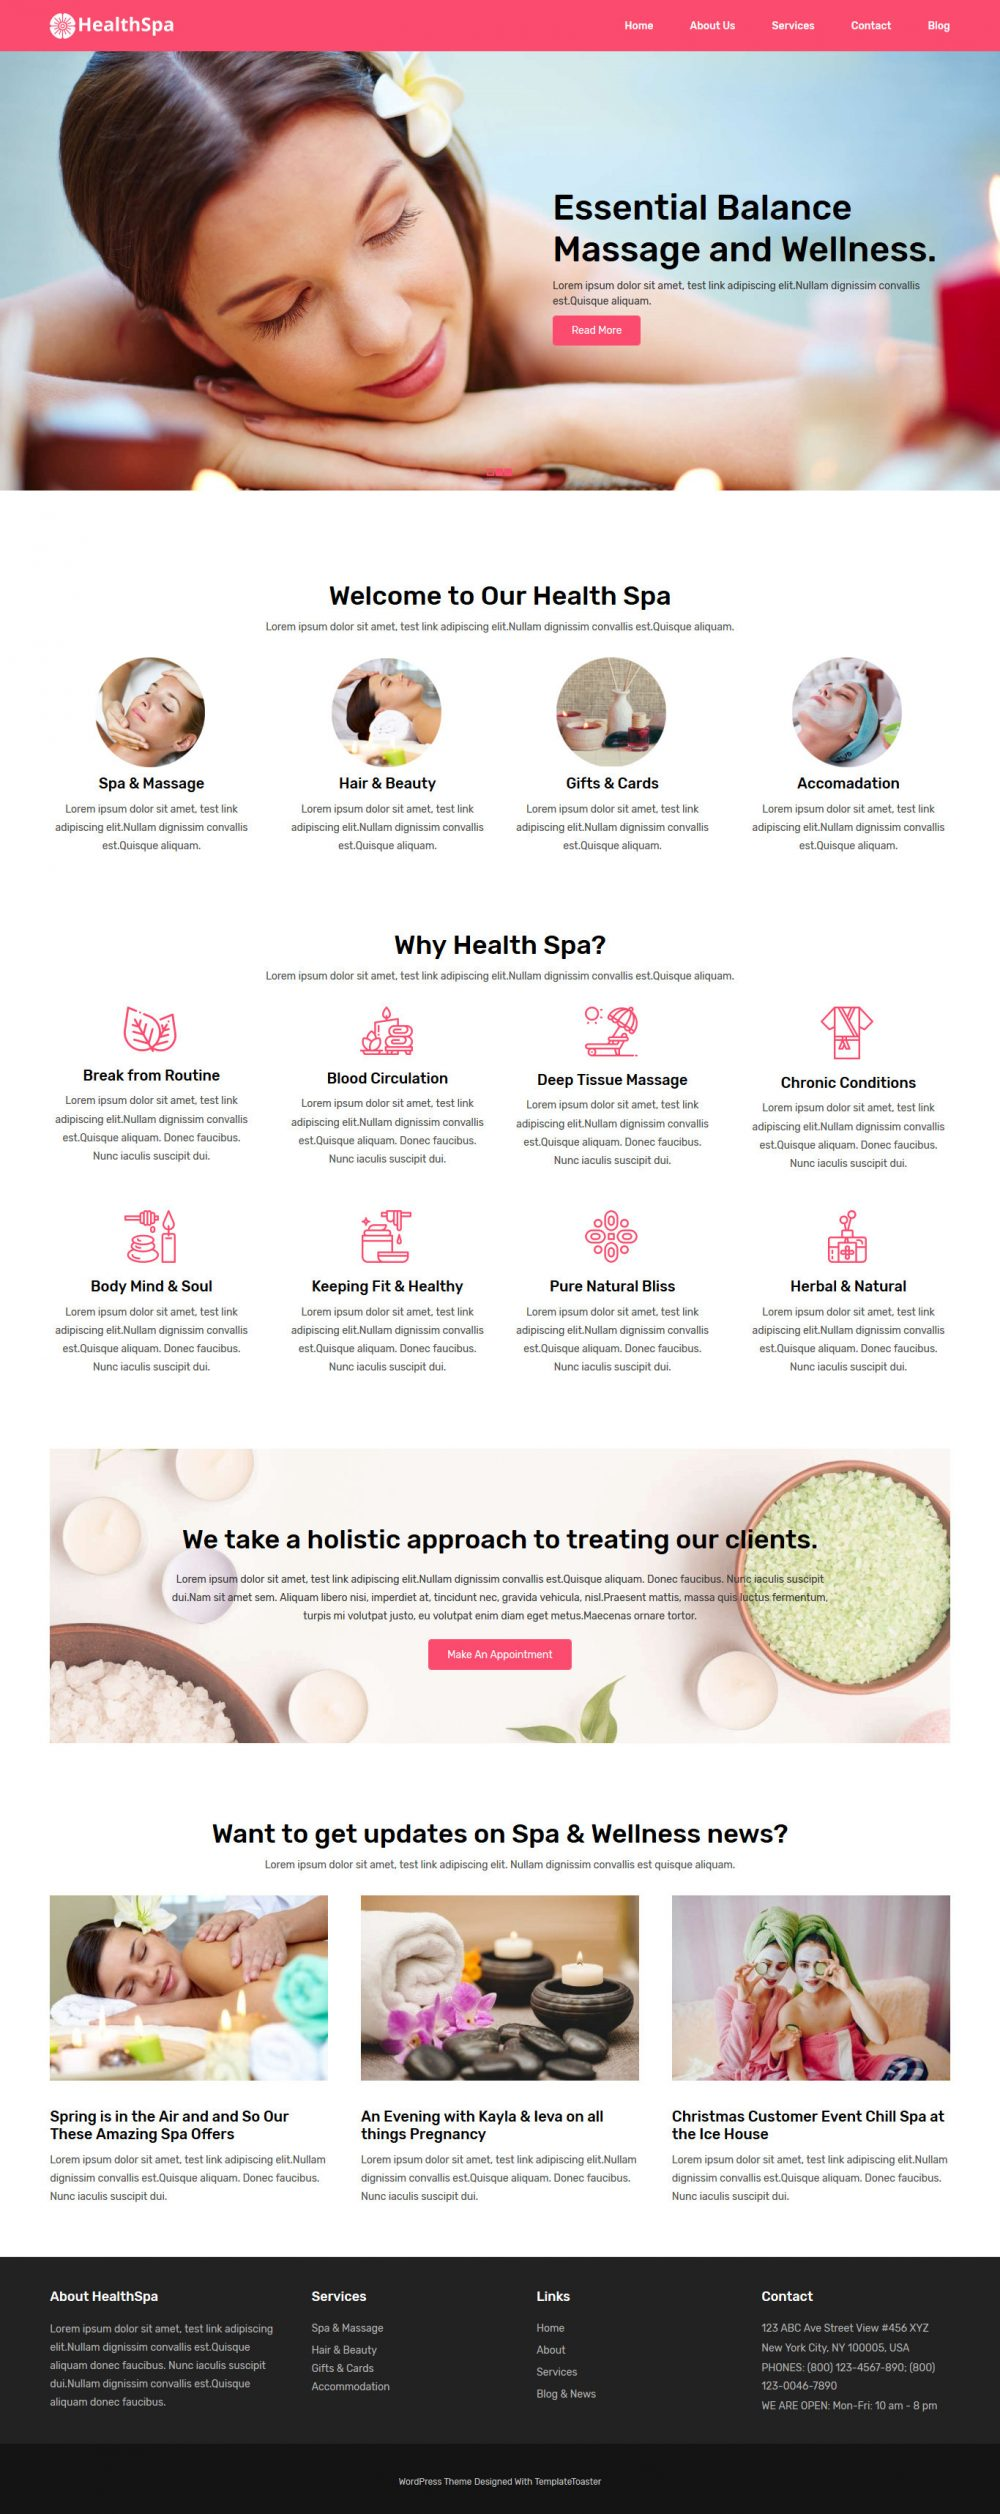 HealthSpa Salon & Spa Free WordPress Theme